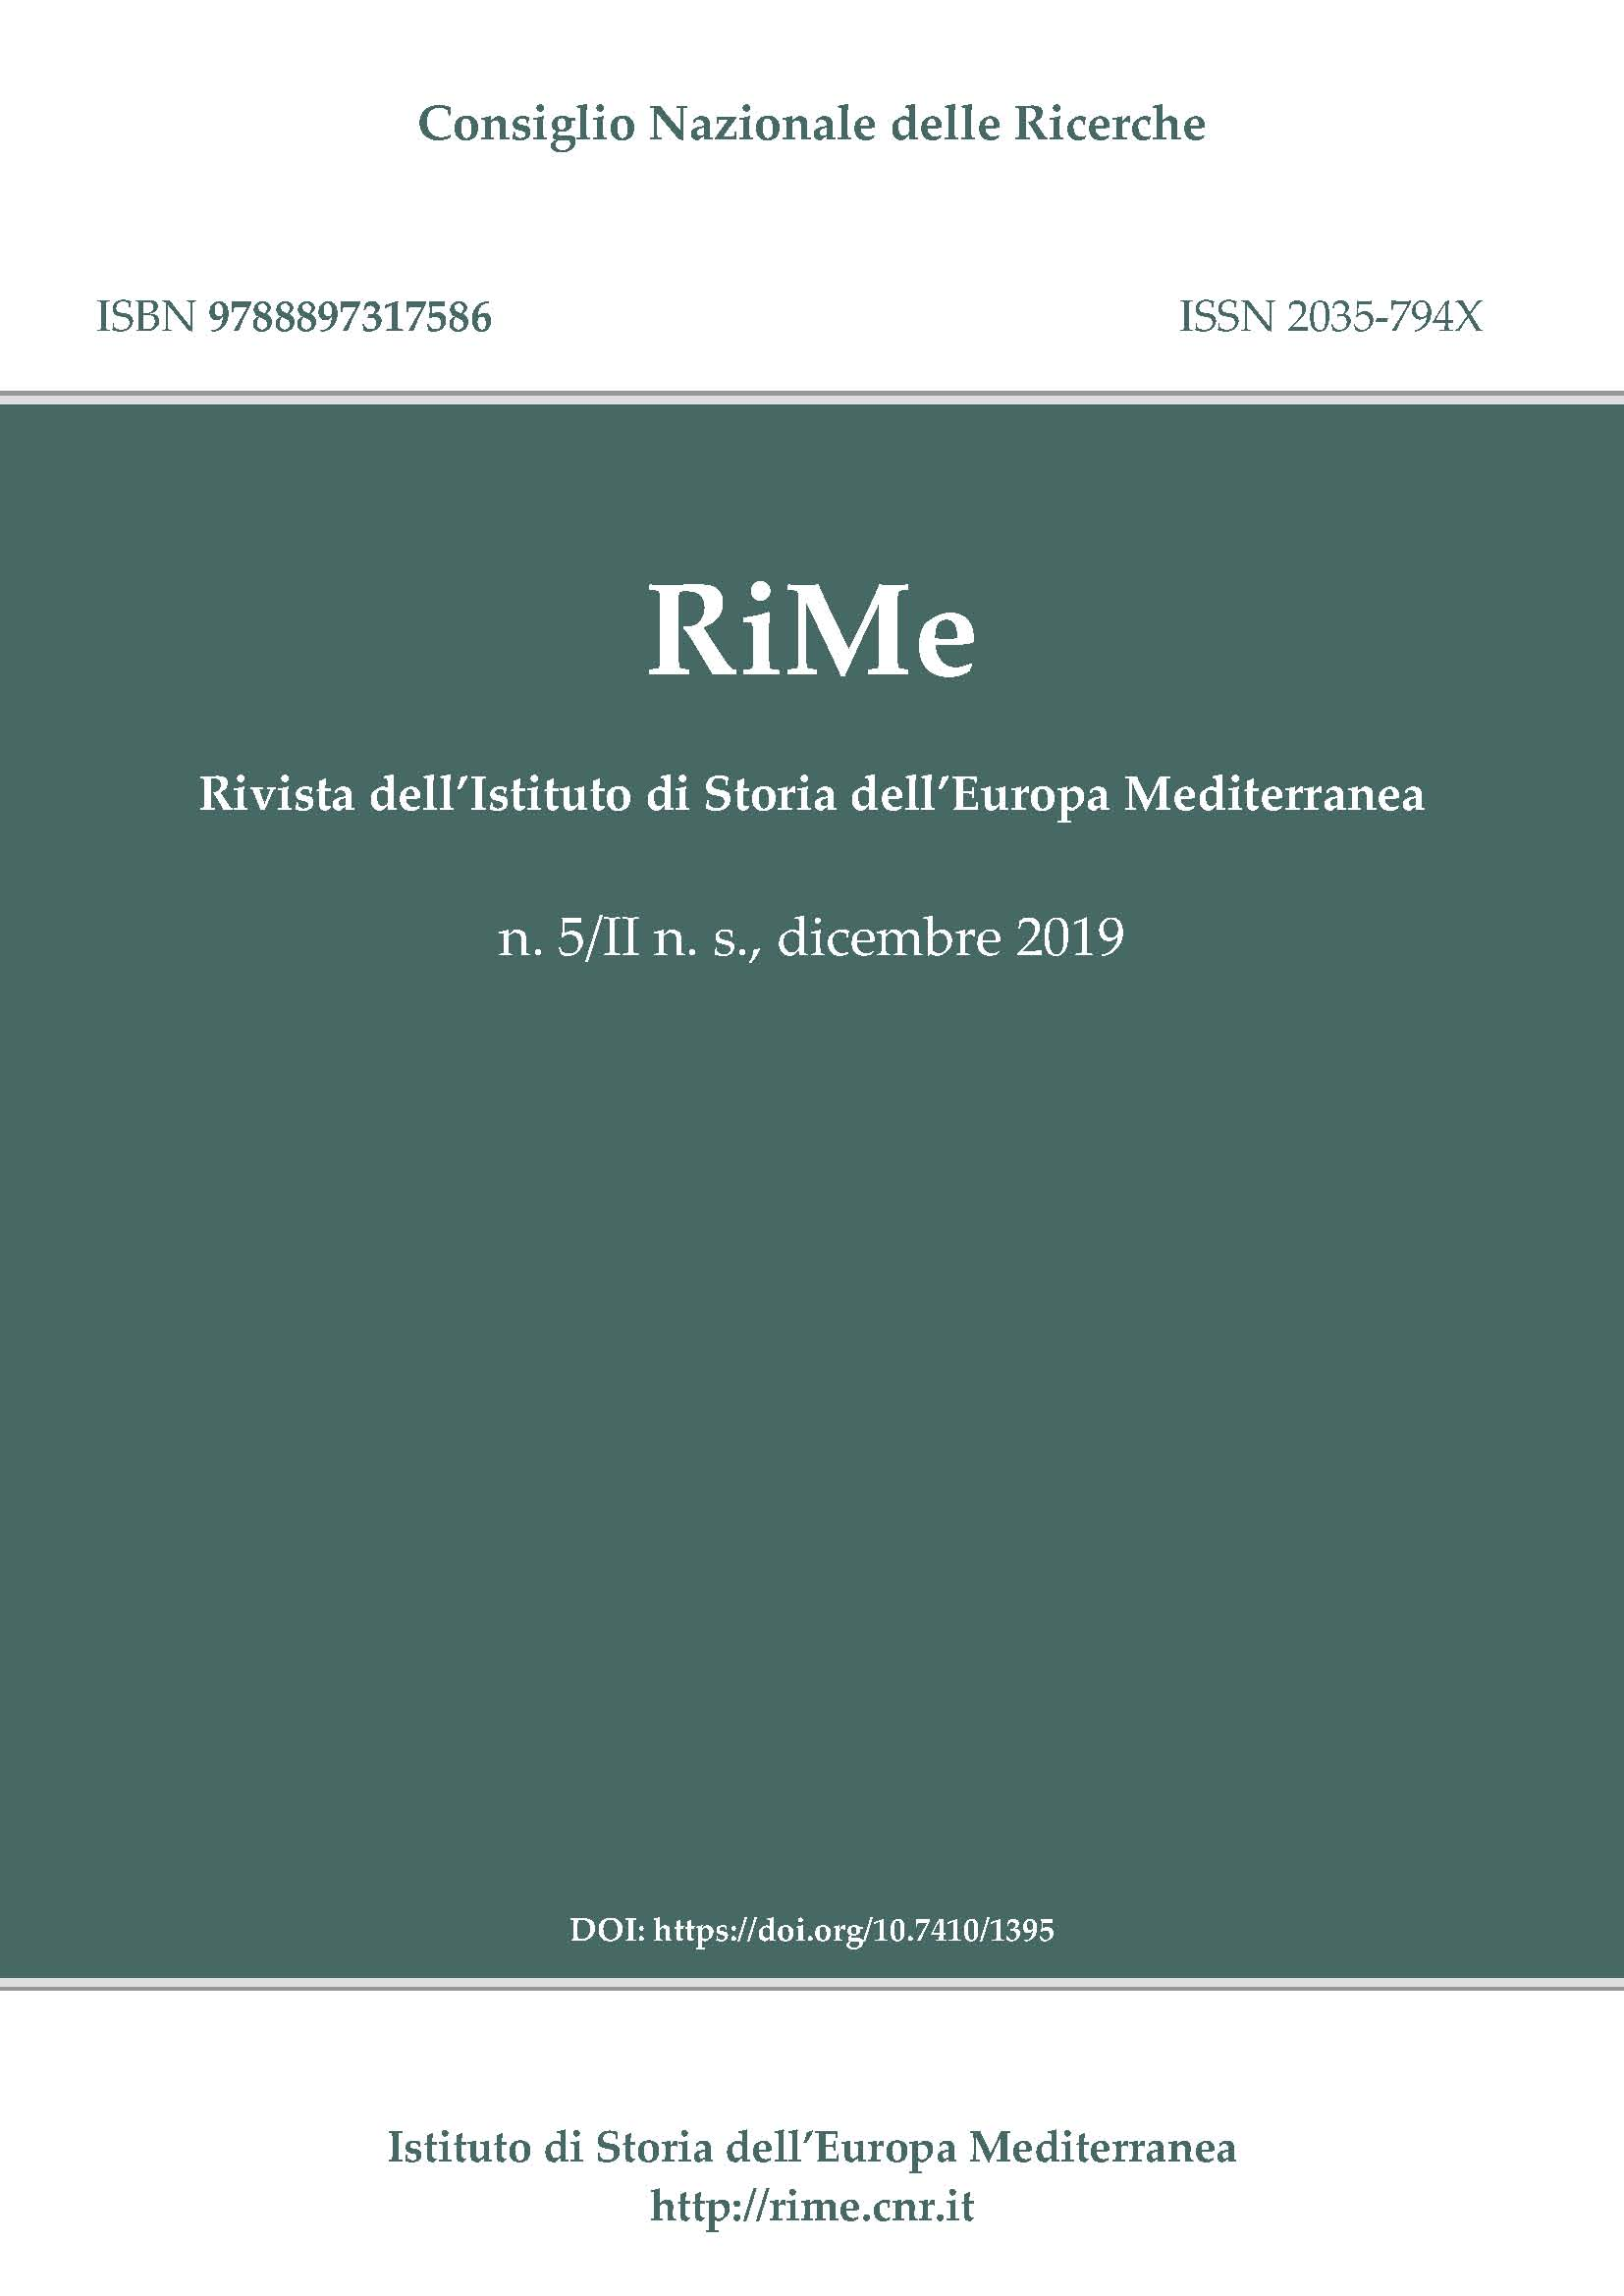 Special Issue RiMe on Religious Culture and Education in 20th and 21st Century Europe